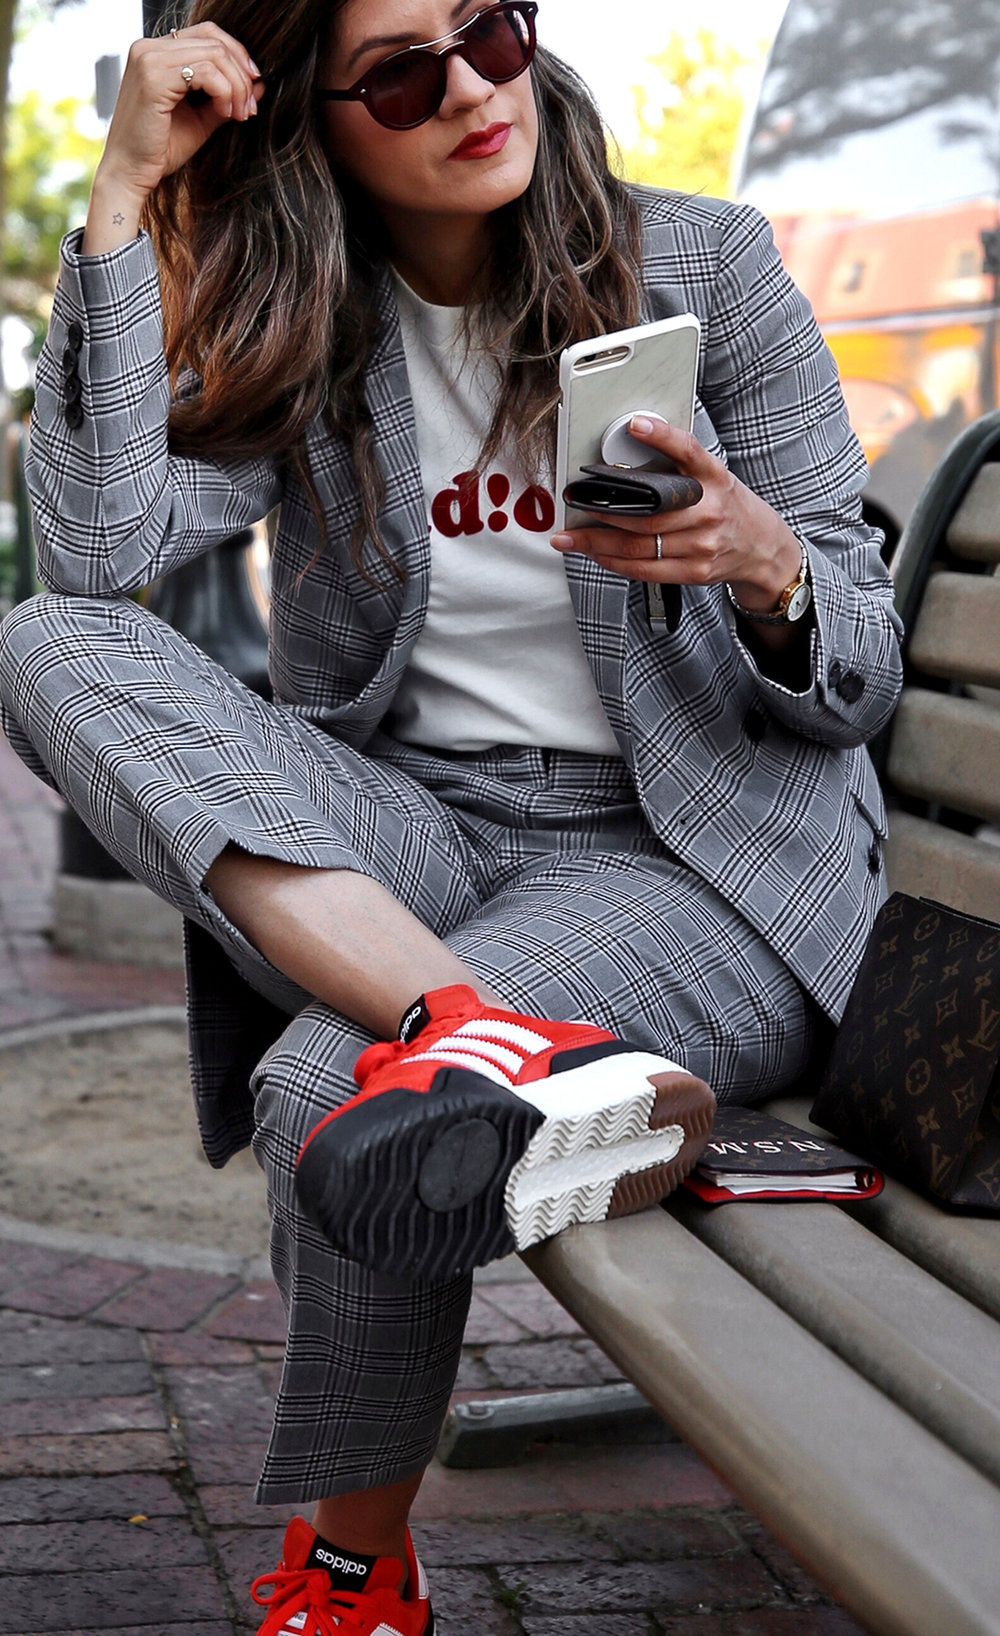 fw18 street style plaid suit women - menswear inspired - nordstrom - alexander wang Orange red AW BBall Soccer Sneakers, louis vuitton small agenda 8.JPG